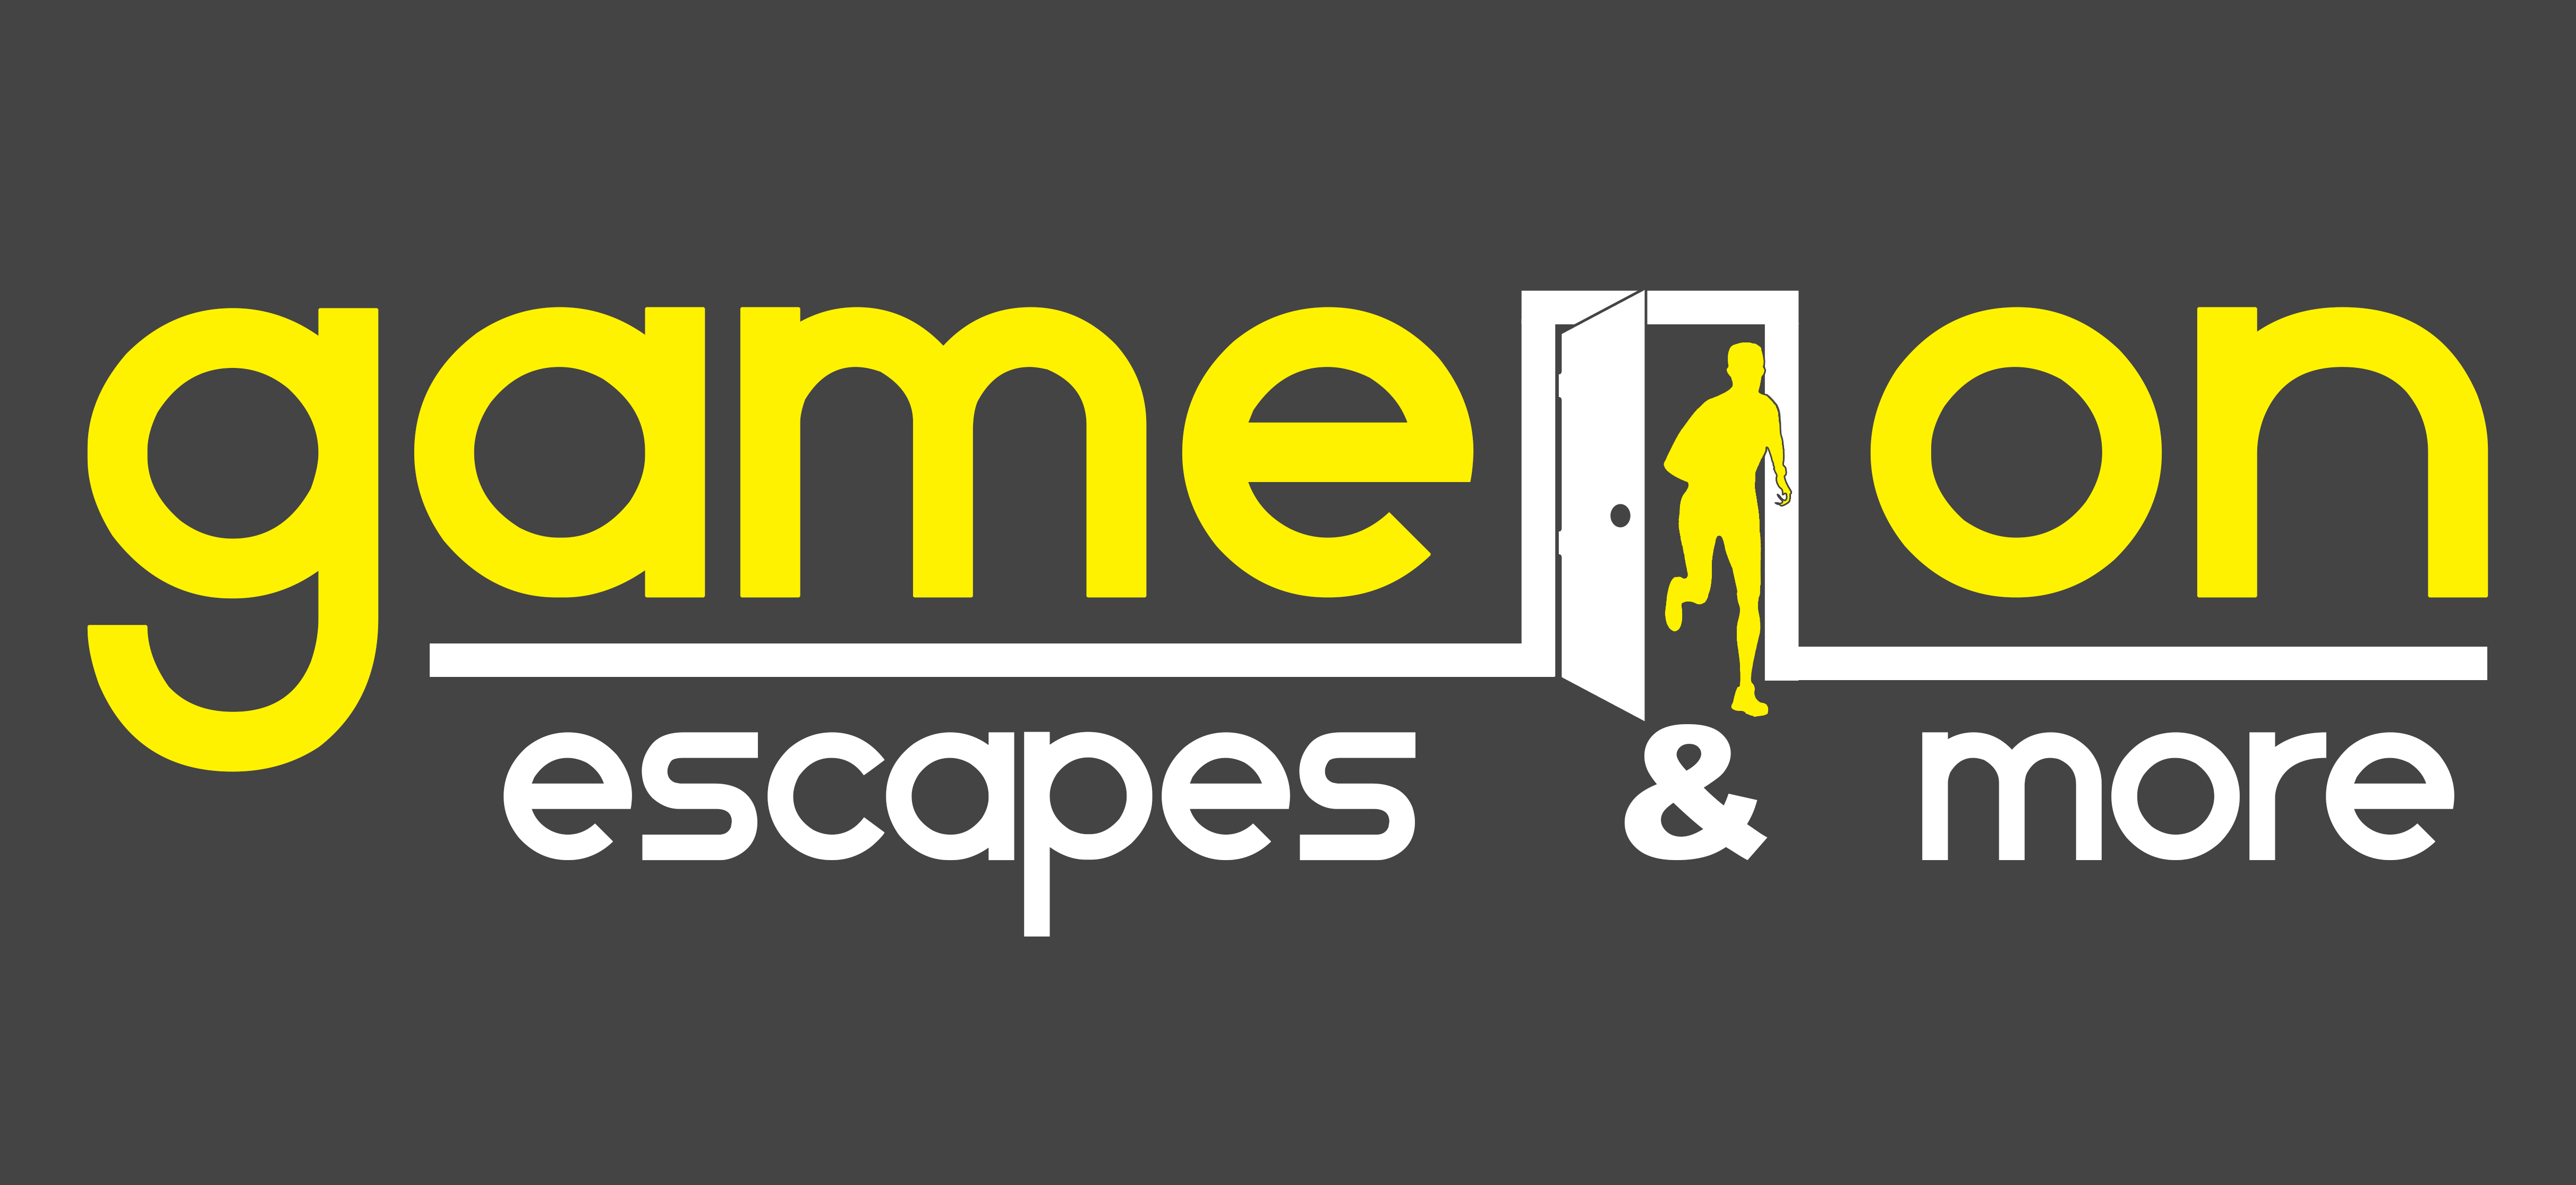 Game On Escapes More Escape Rooms Cary Nc